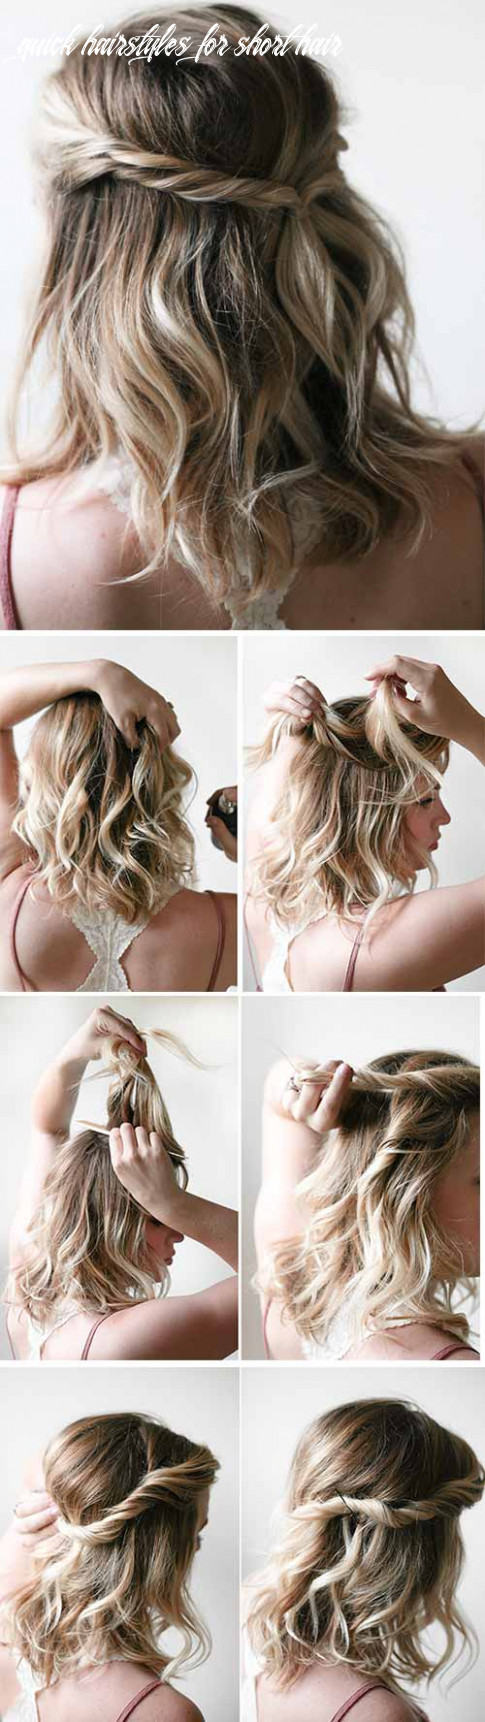 10 incredible diy short hairstyles a step by step guide quick hairstyles for short hair